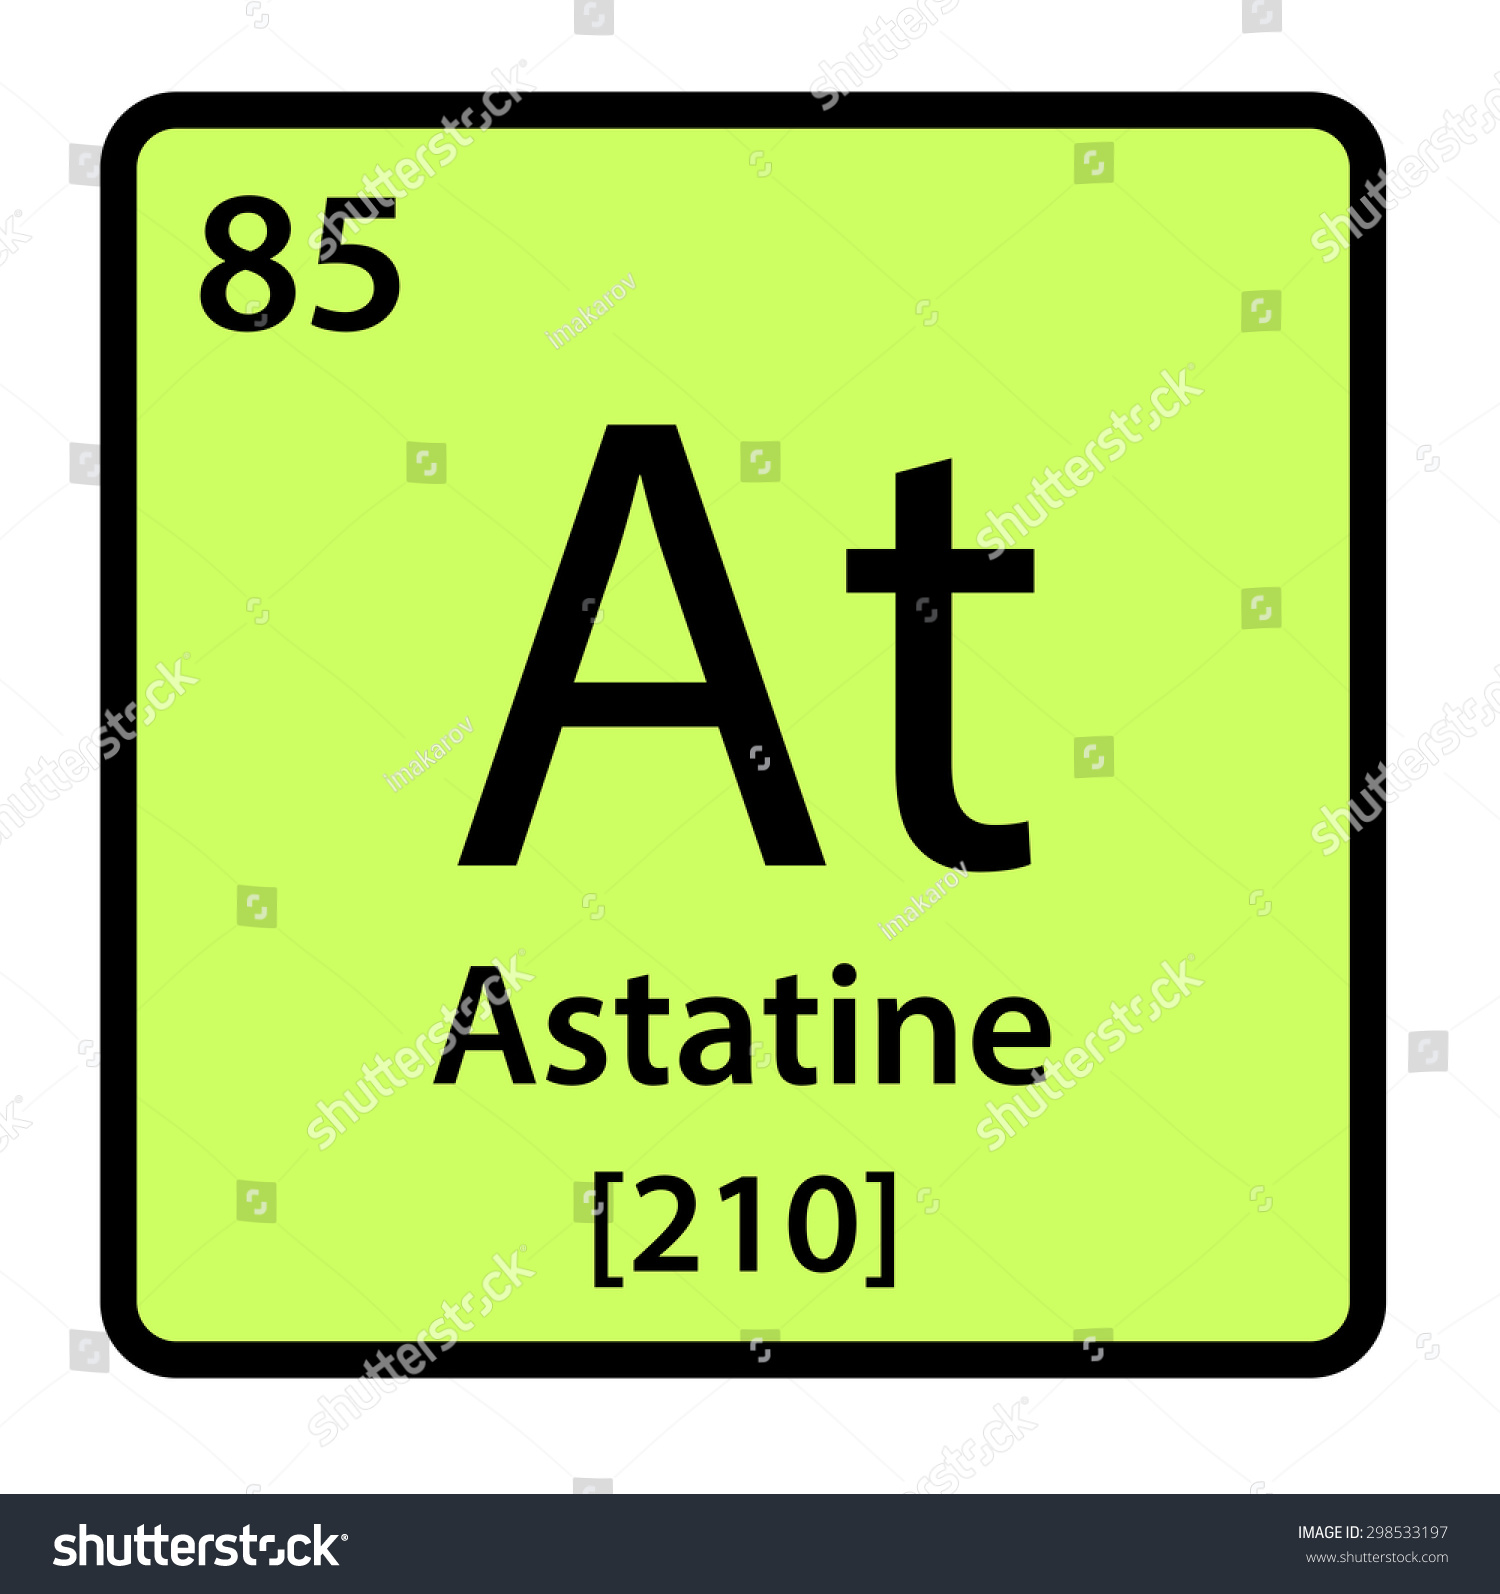 Element astatine periodic table stock illustration 298533197 element astatine of the periodic table gamestrikefo Gallery